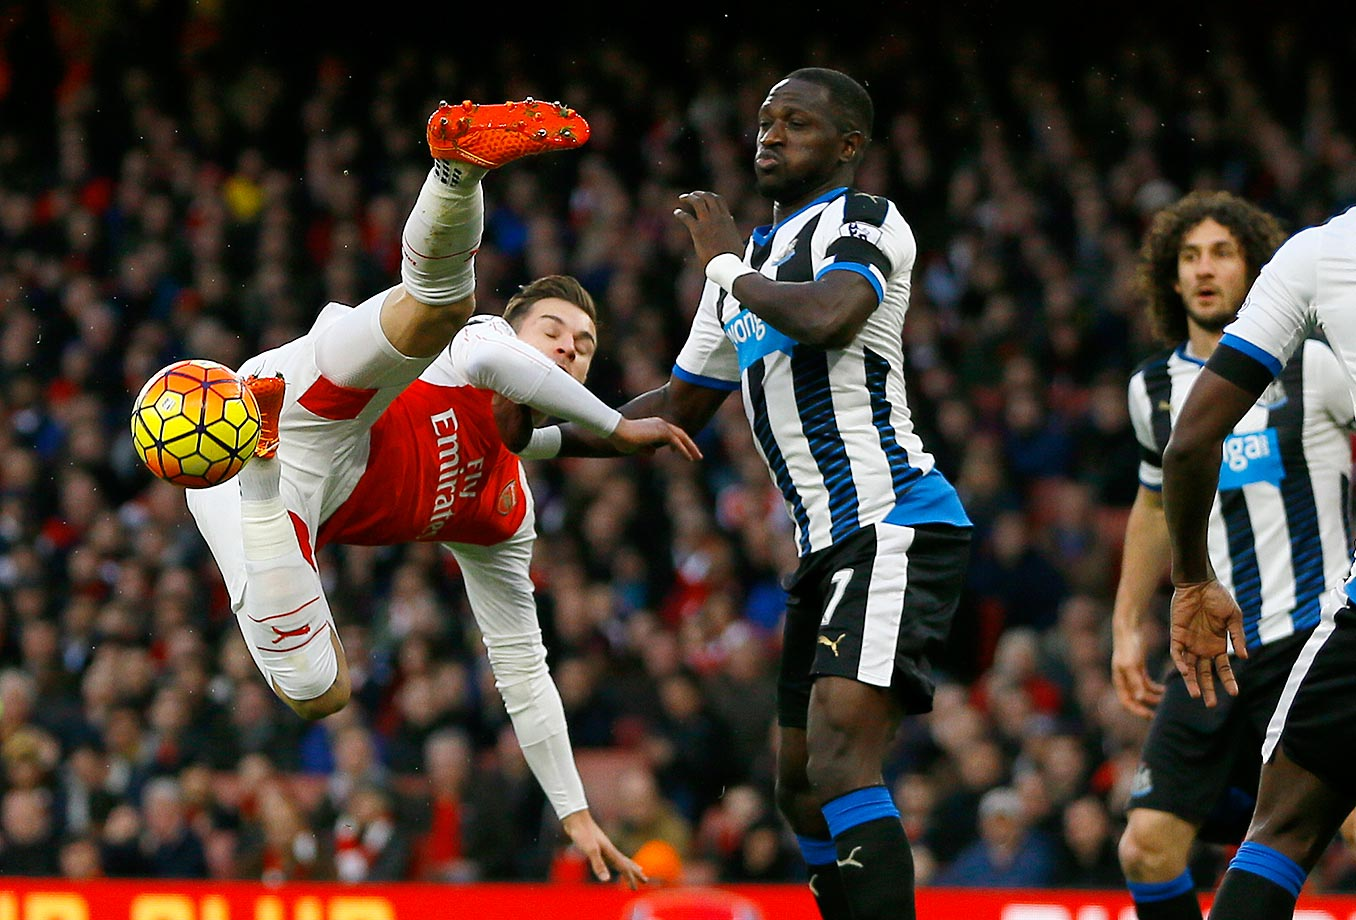 Aaron Ramsey of Arsenal makes a move for the ball against Moussa Sissoko of Newcastle United.